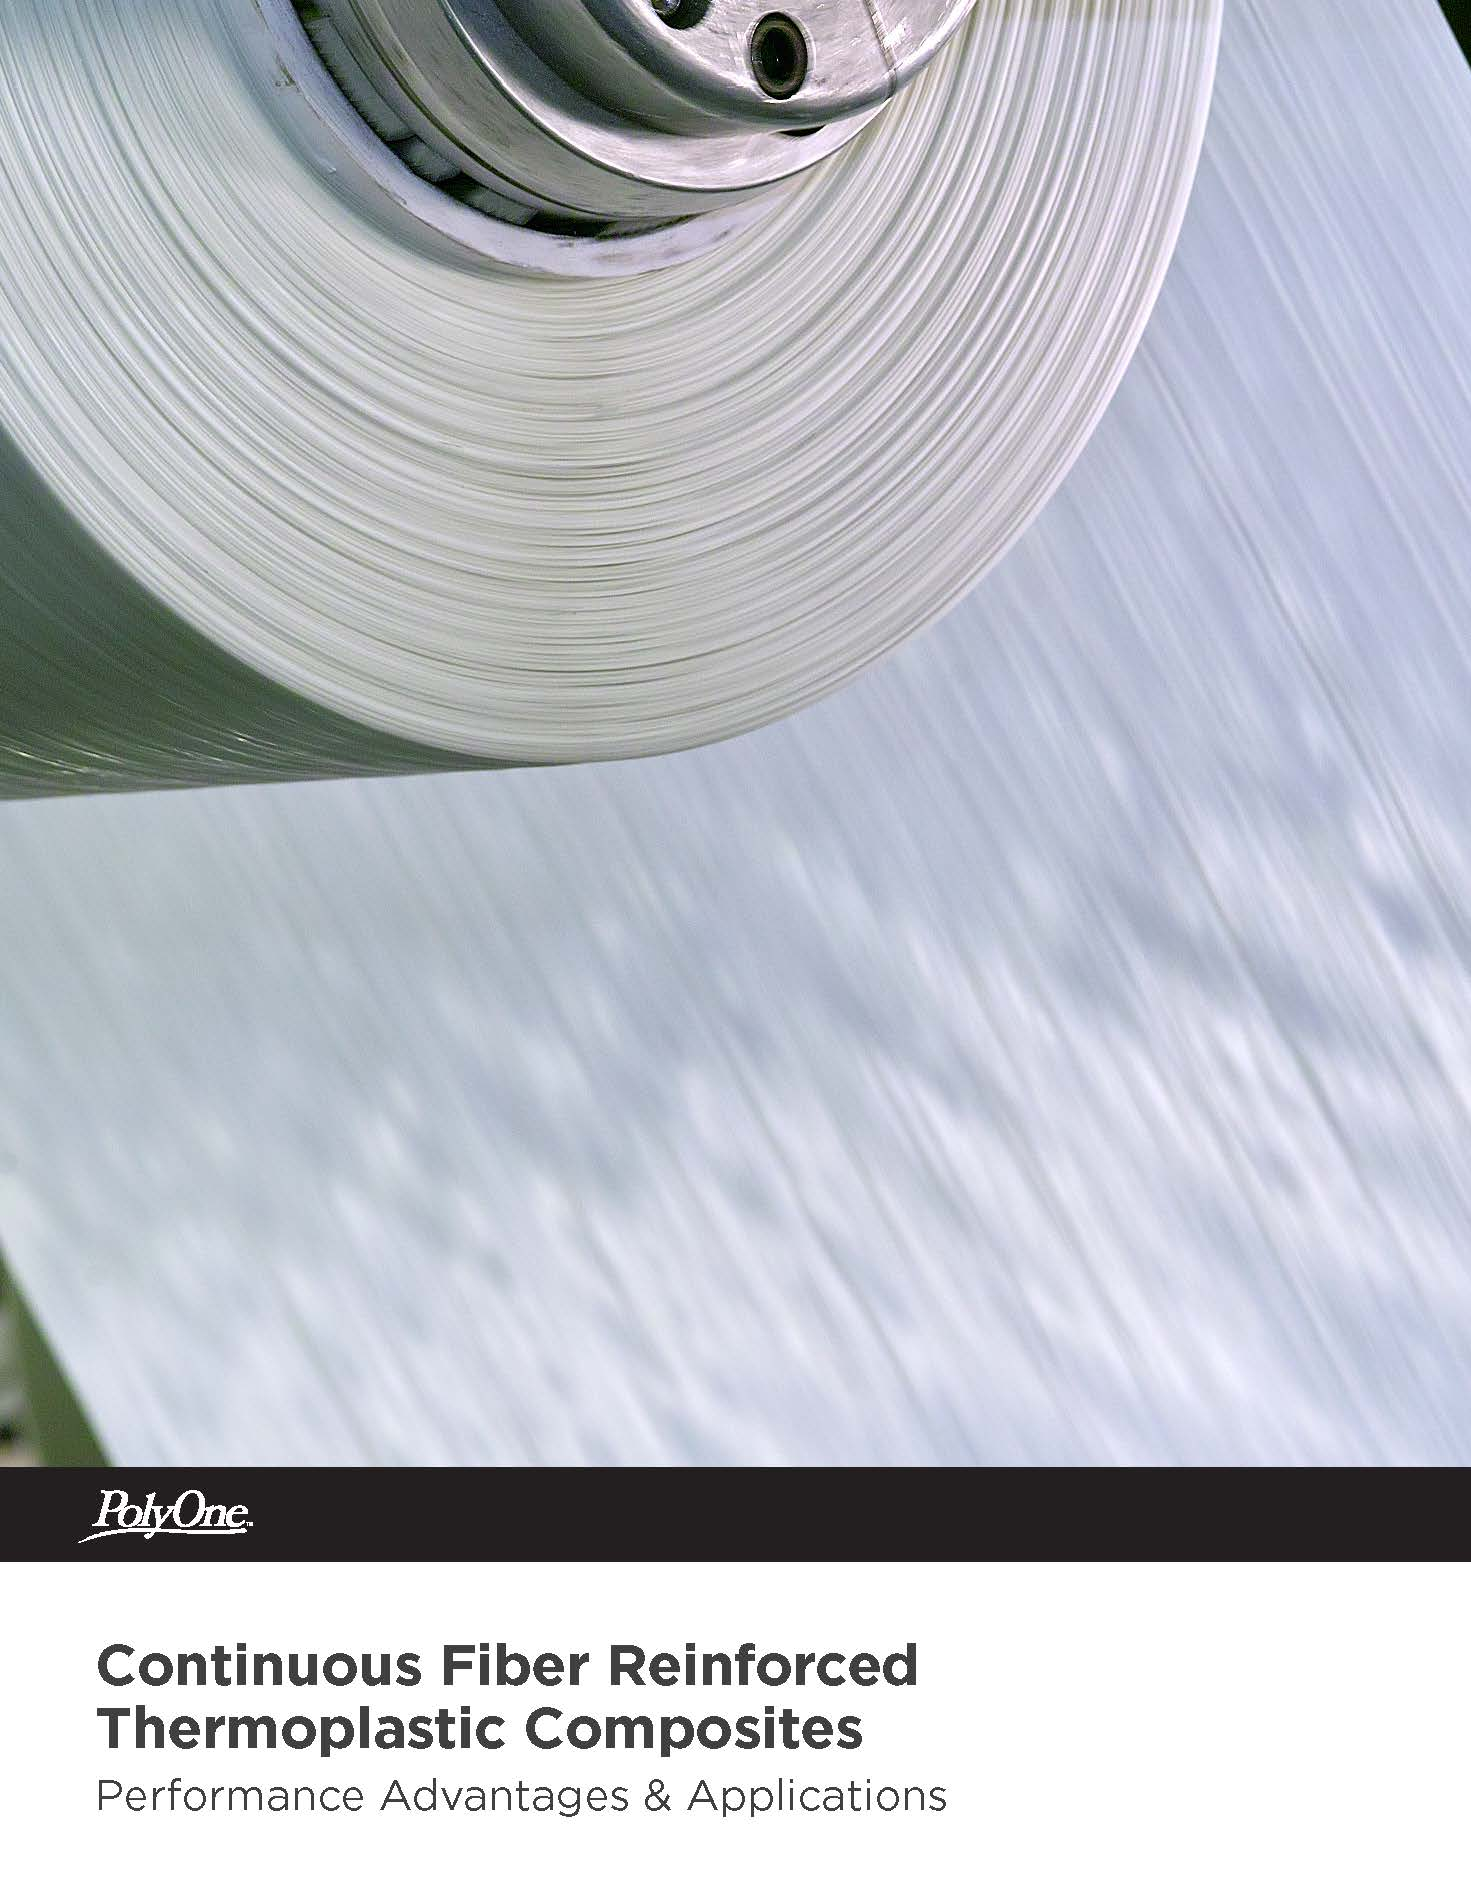 Explore the benefits of reinforced plastics with our whitepager: Continuous Fiber Reinforced Thermoplastic Composites - Performance Advantages and Application